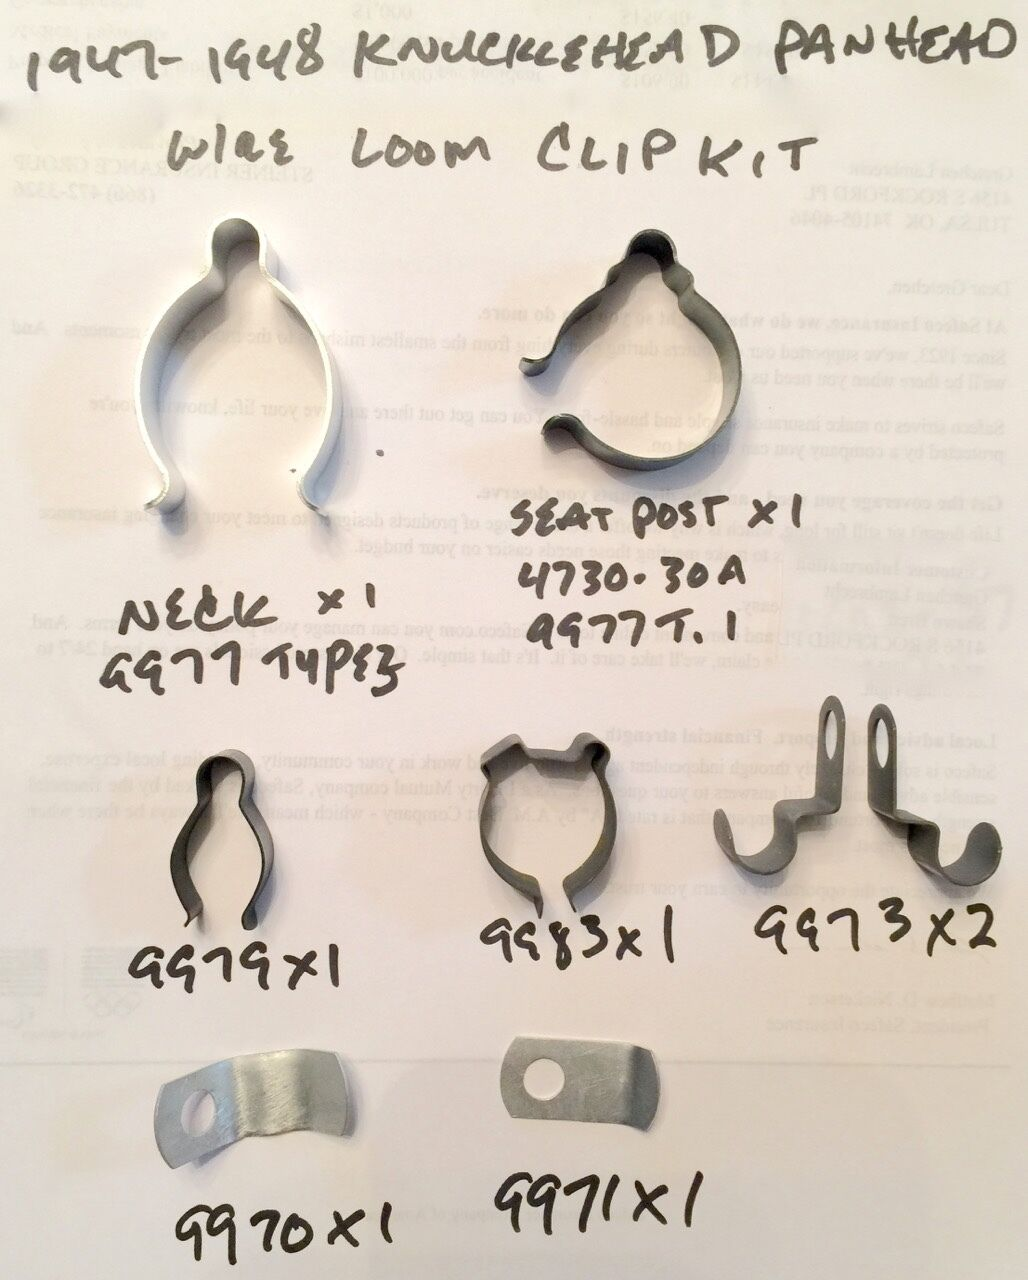 Harley 47 48 Knucklehead Panhead Main Wire Loom Clip Clamp Kit Wiring Clips 4748 473030a 9977